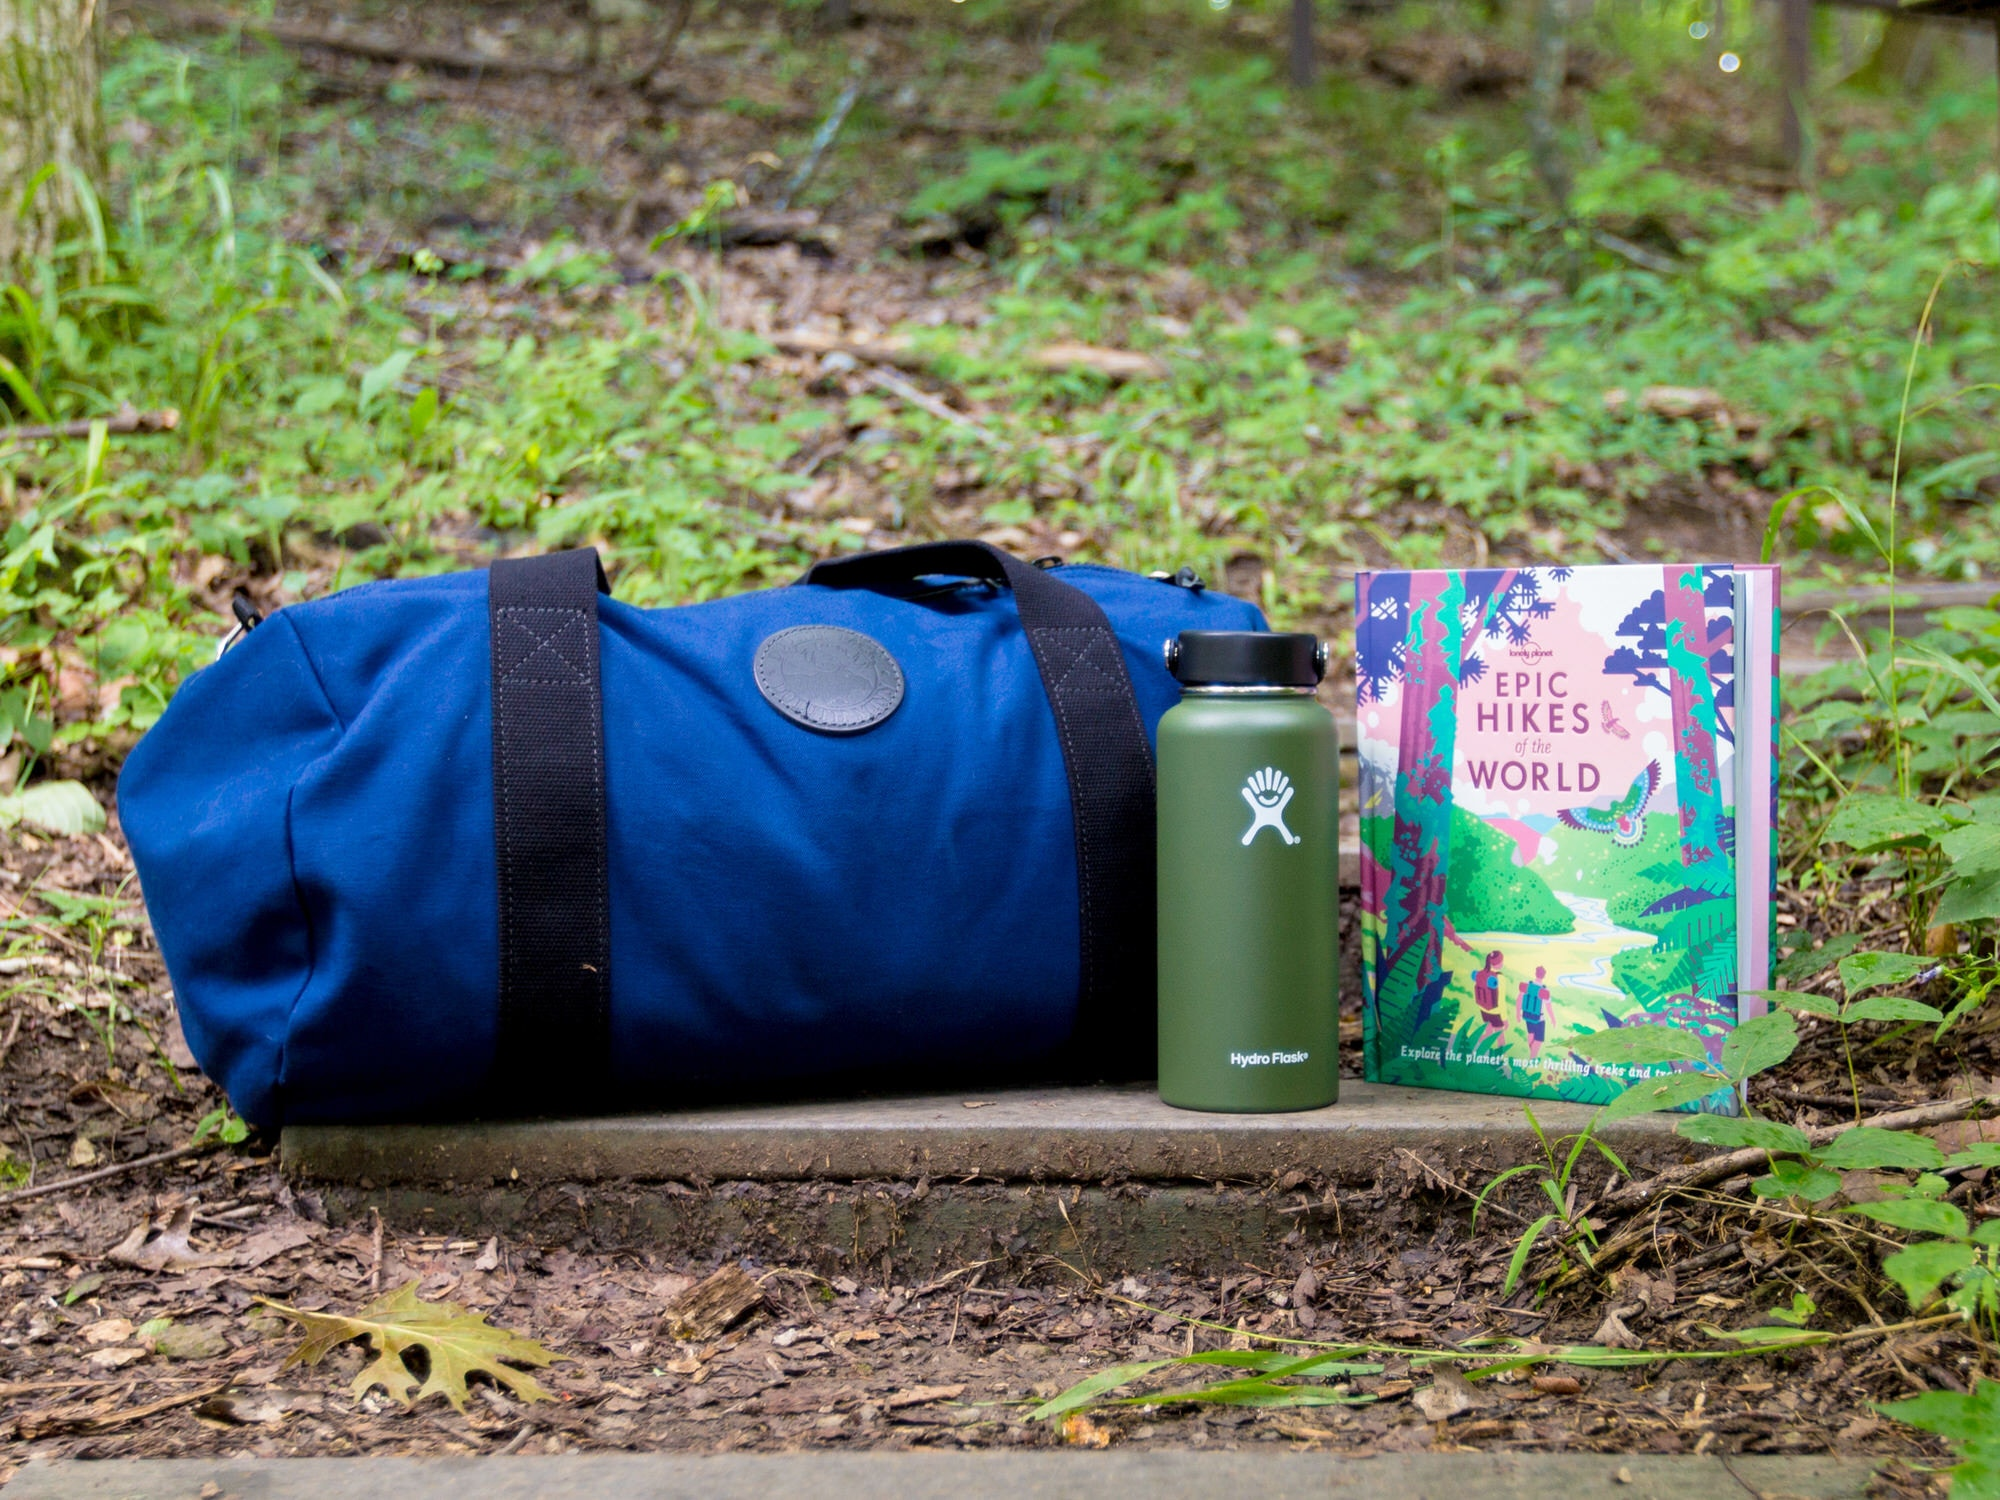 Second prize: a Duluth Round Duffel bag, Hydro Flask and Lonely Planet's Epic Hikes of the World